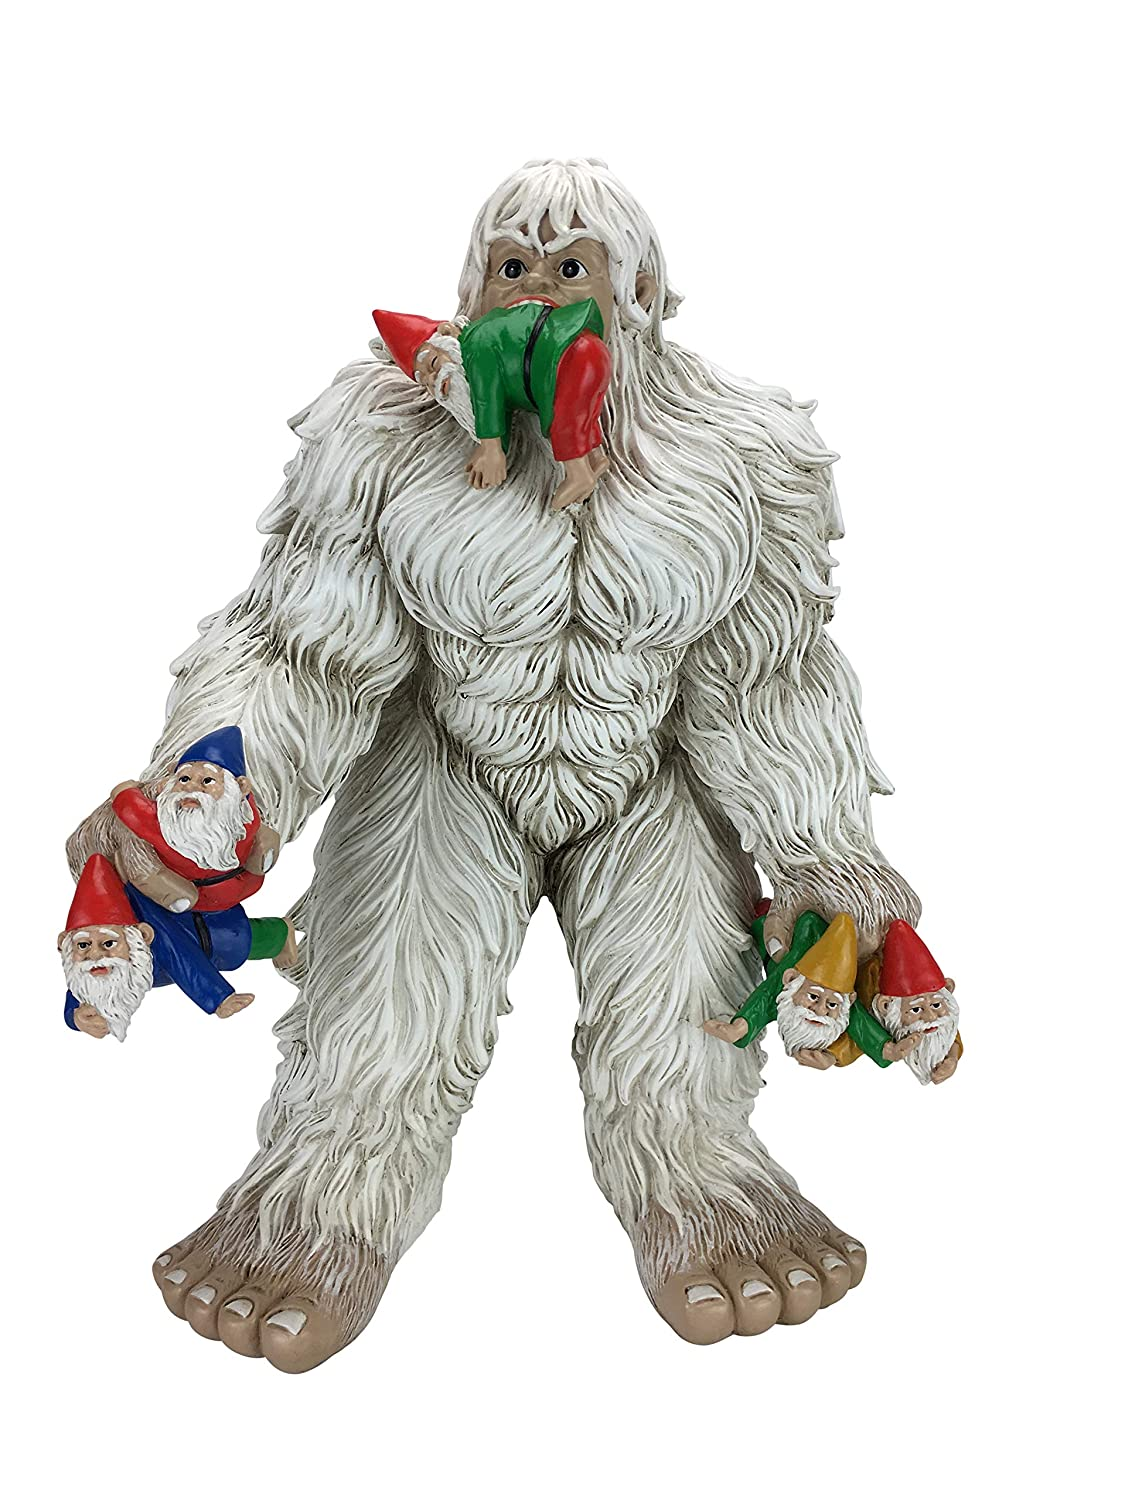 GlitZGlam Large Miniature Yeti and Gnomes for The Fairy Garden. A Large Garden Gnome Figurine (13.25 Inch High) and a Fairy Garden Accessory